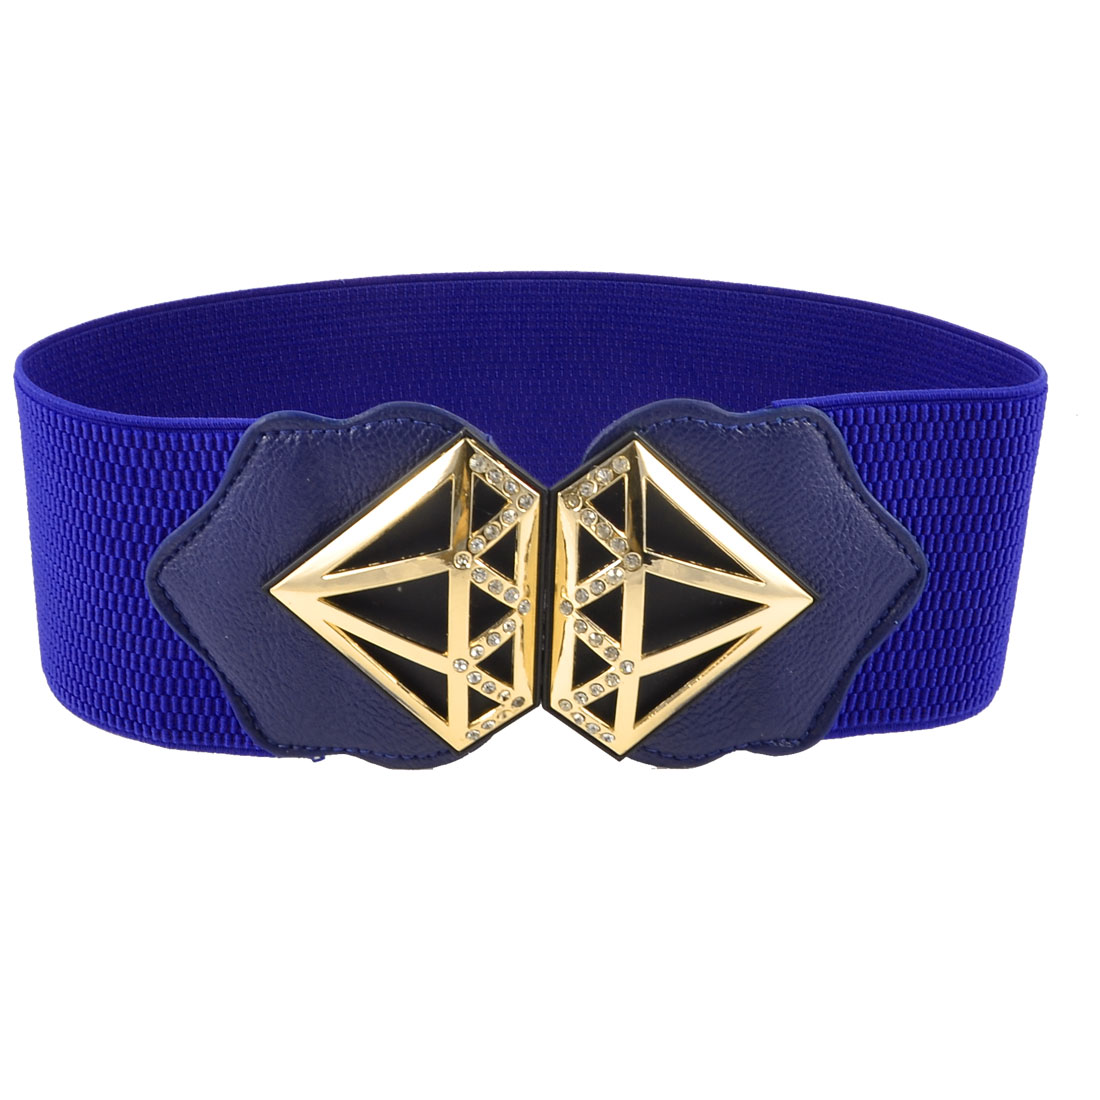 Lady Gold Tone Hollow Metal Detailing Rhinestone Blue Elastic Waist Belt Band